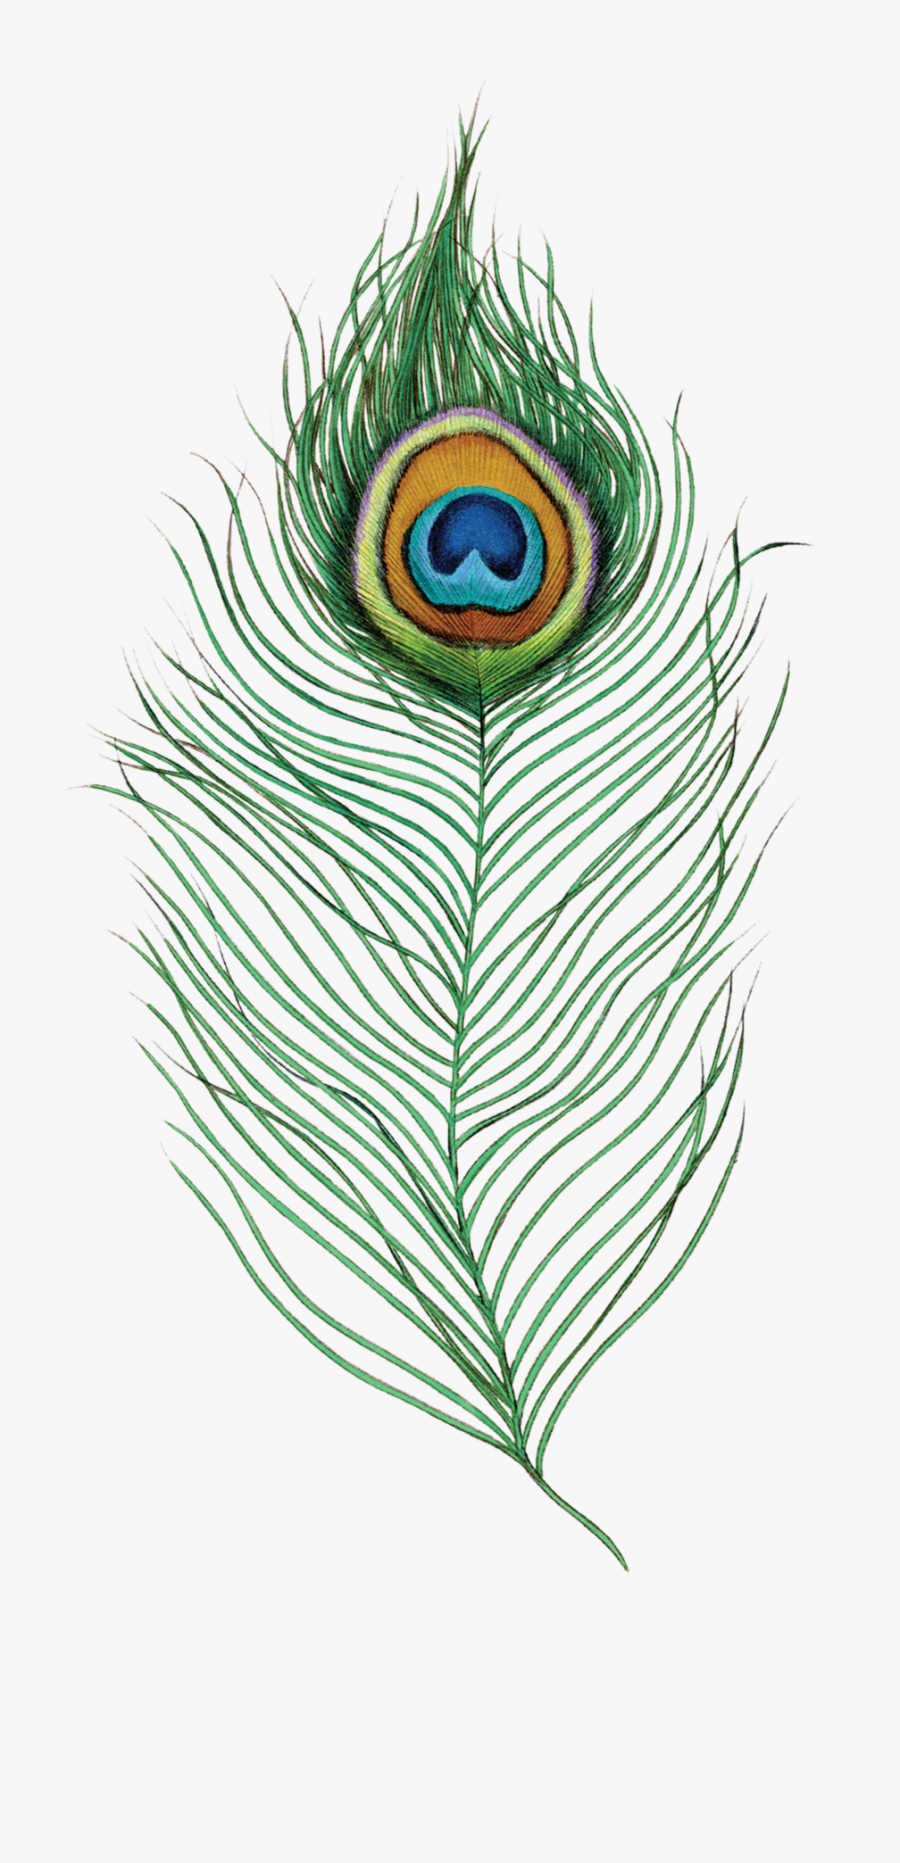 Peacock Feather - Peacock Feather Png Transparent, Transparent Clipart